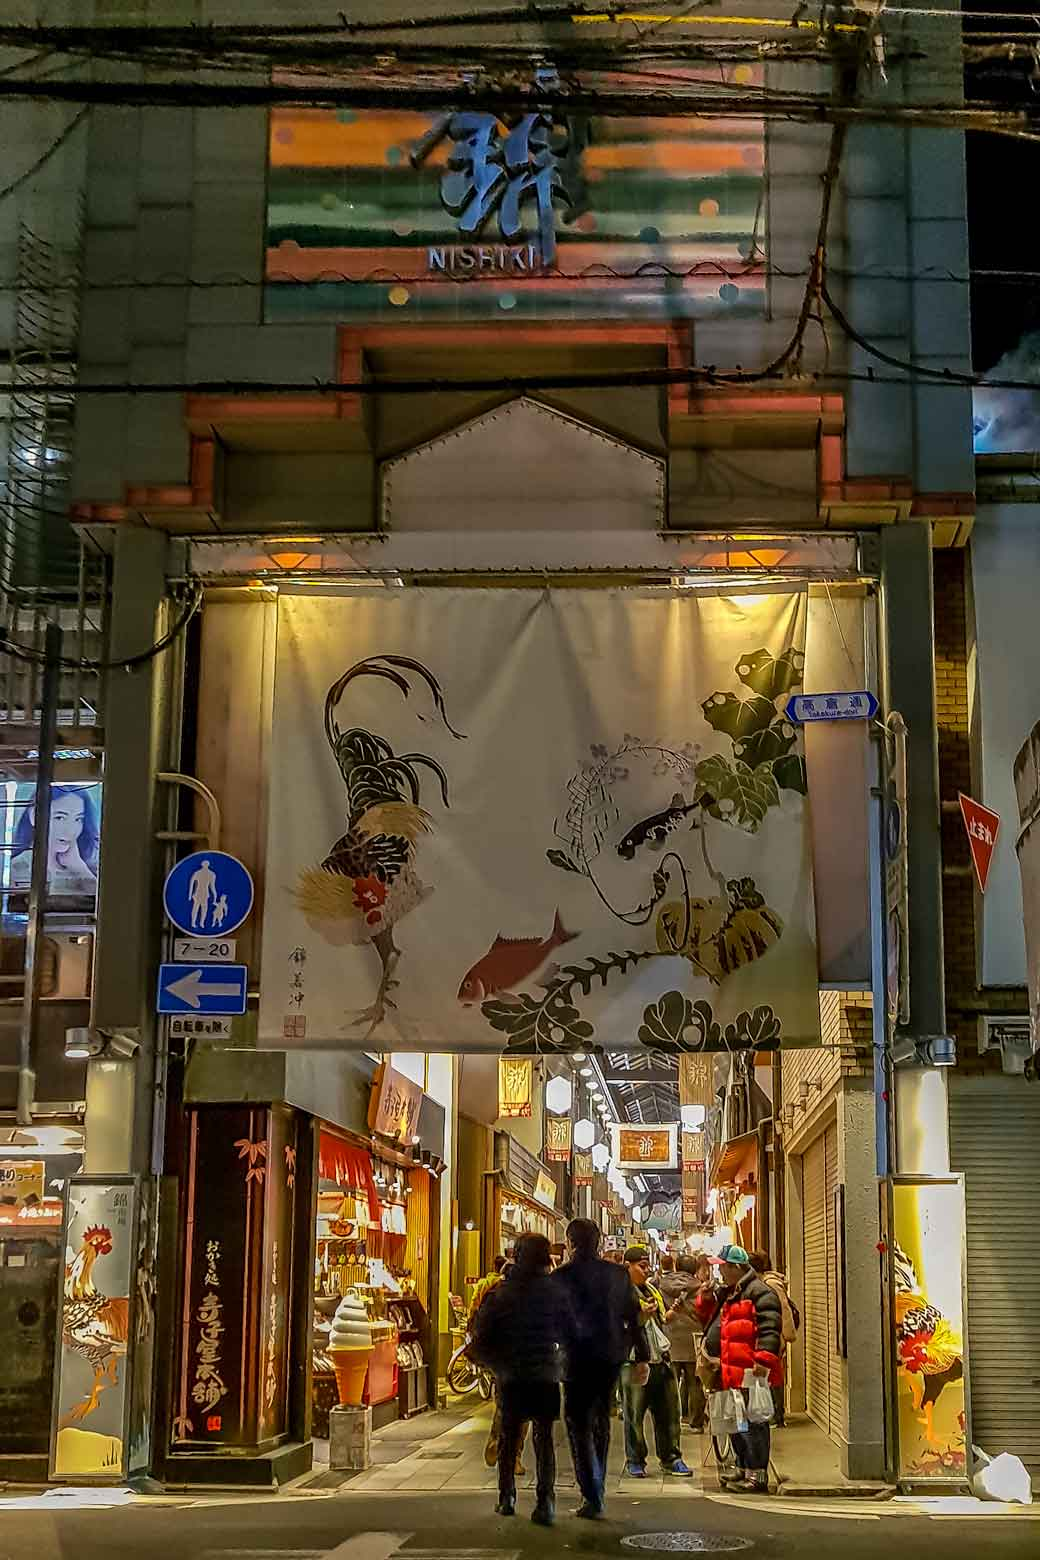 An eastern entrance to Nishiki Market in Kyoto